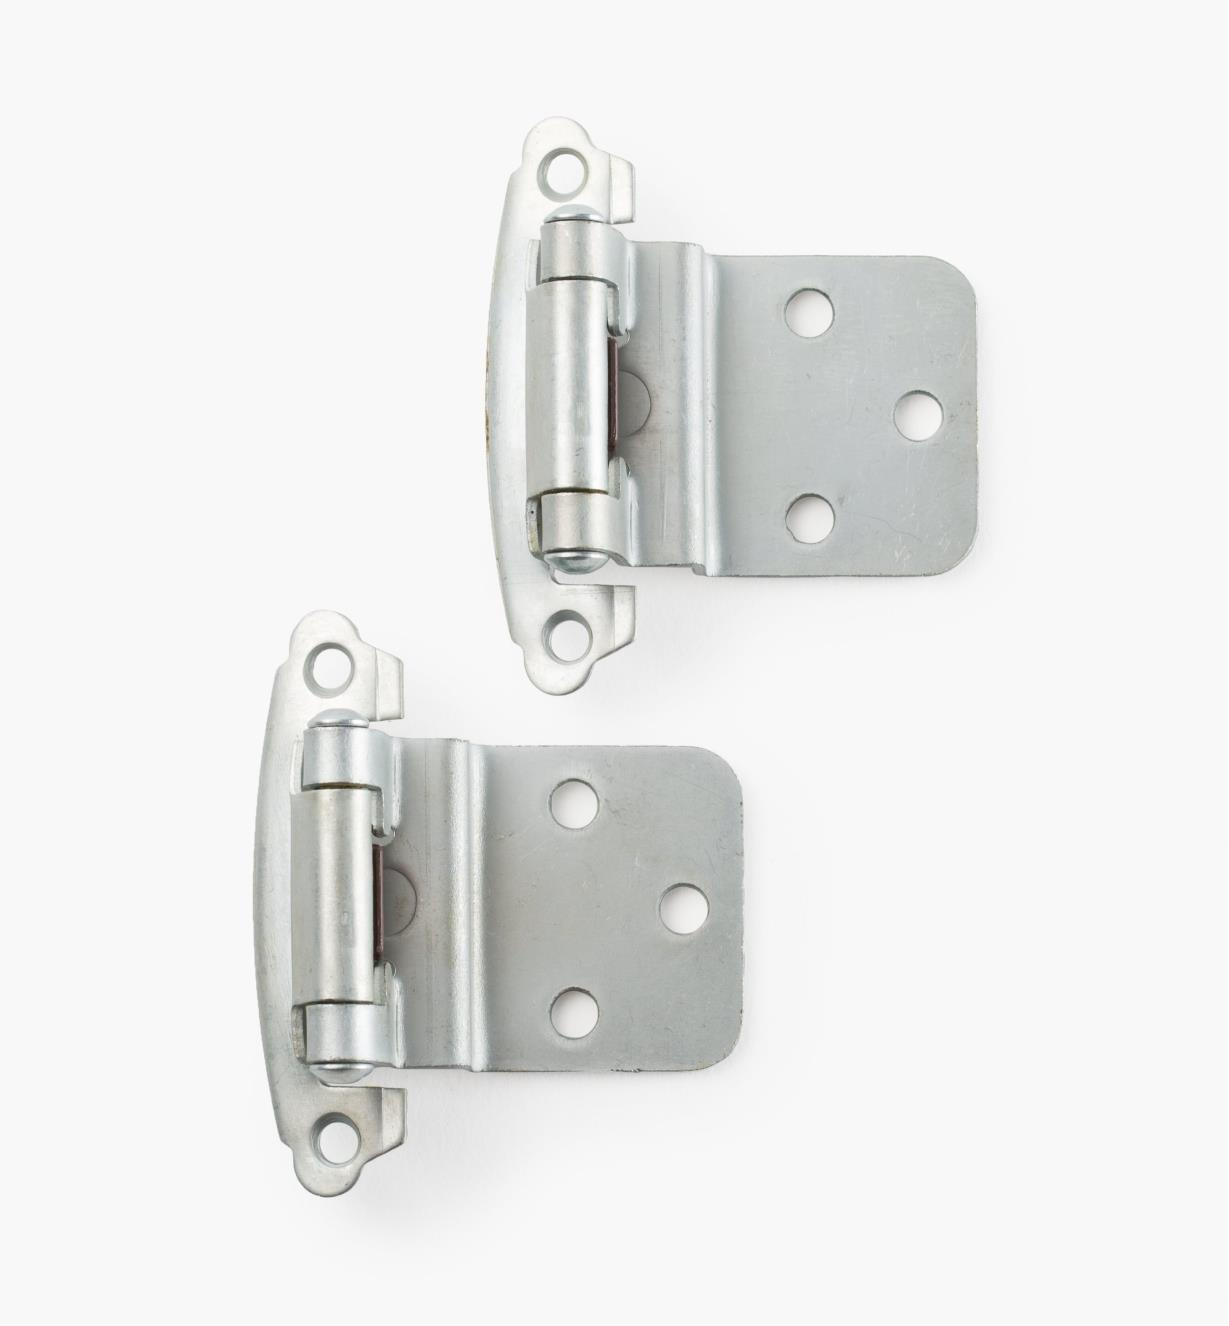 03W1213 - Belwith Surface Self-Closing Offset Hinges, Satin Chrome, 10 pr.